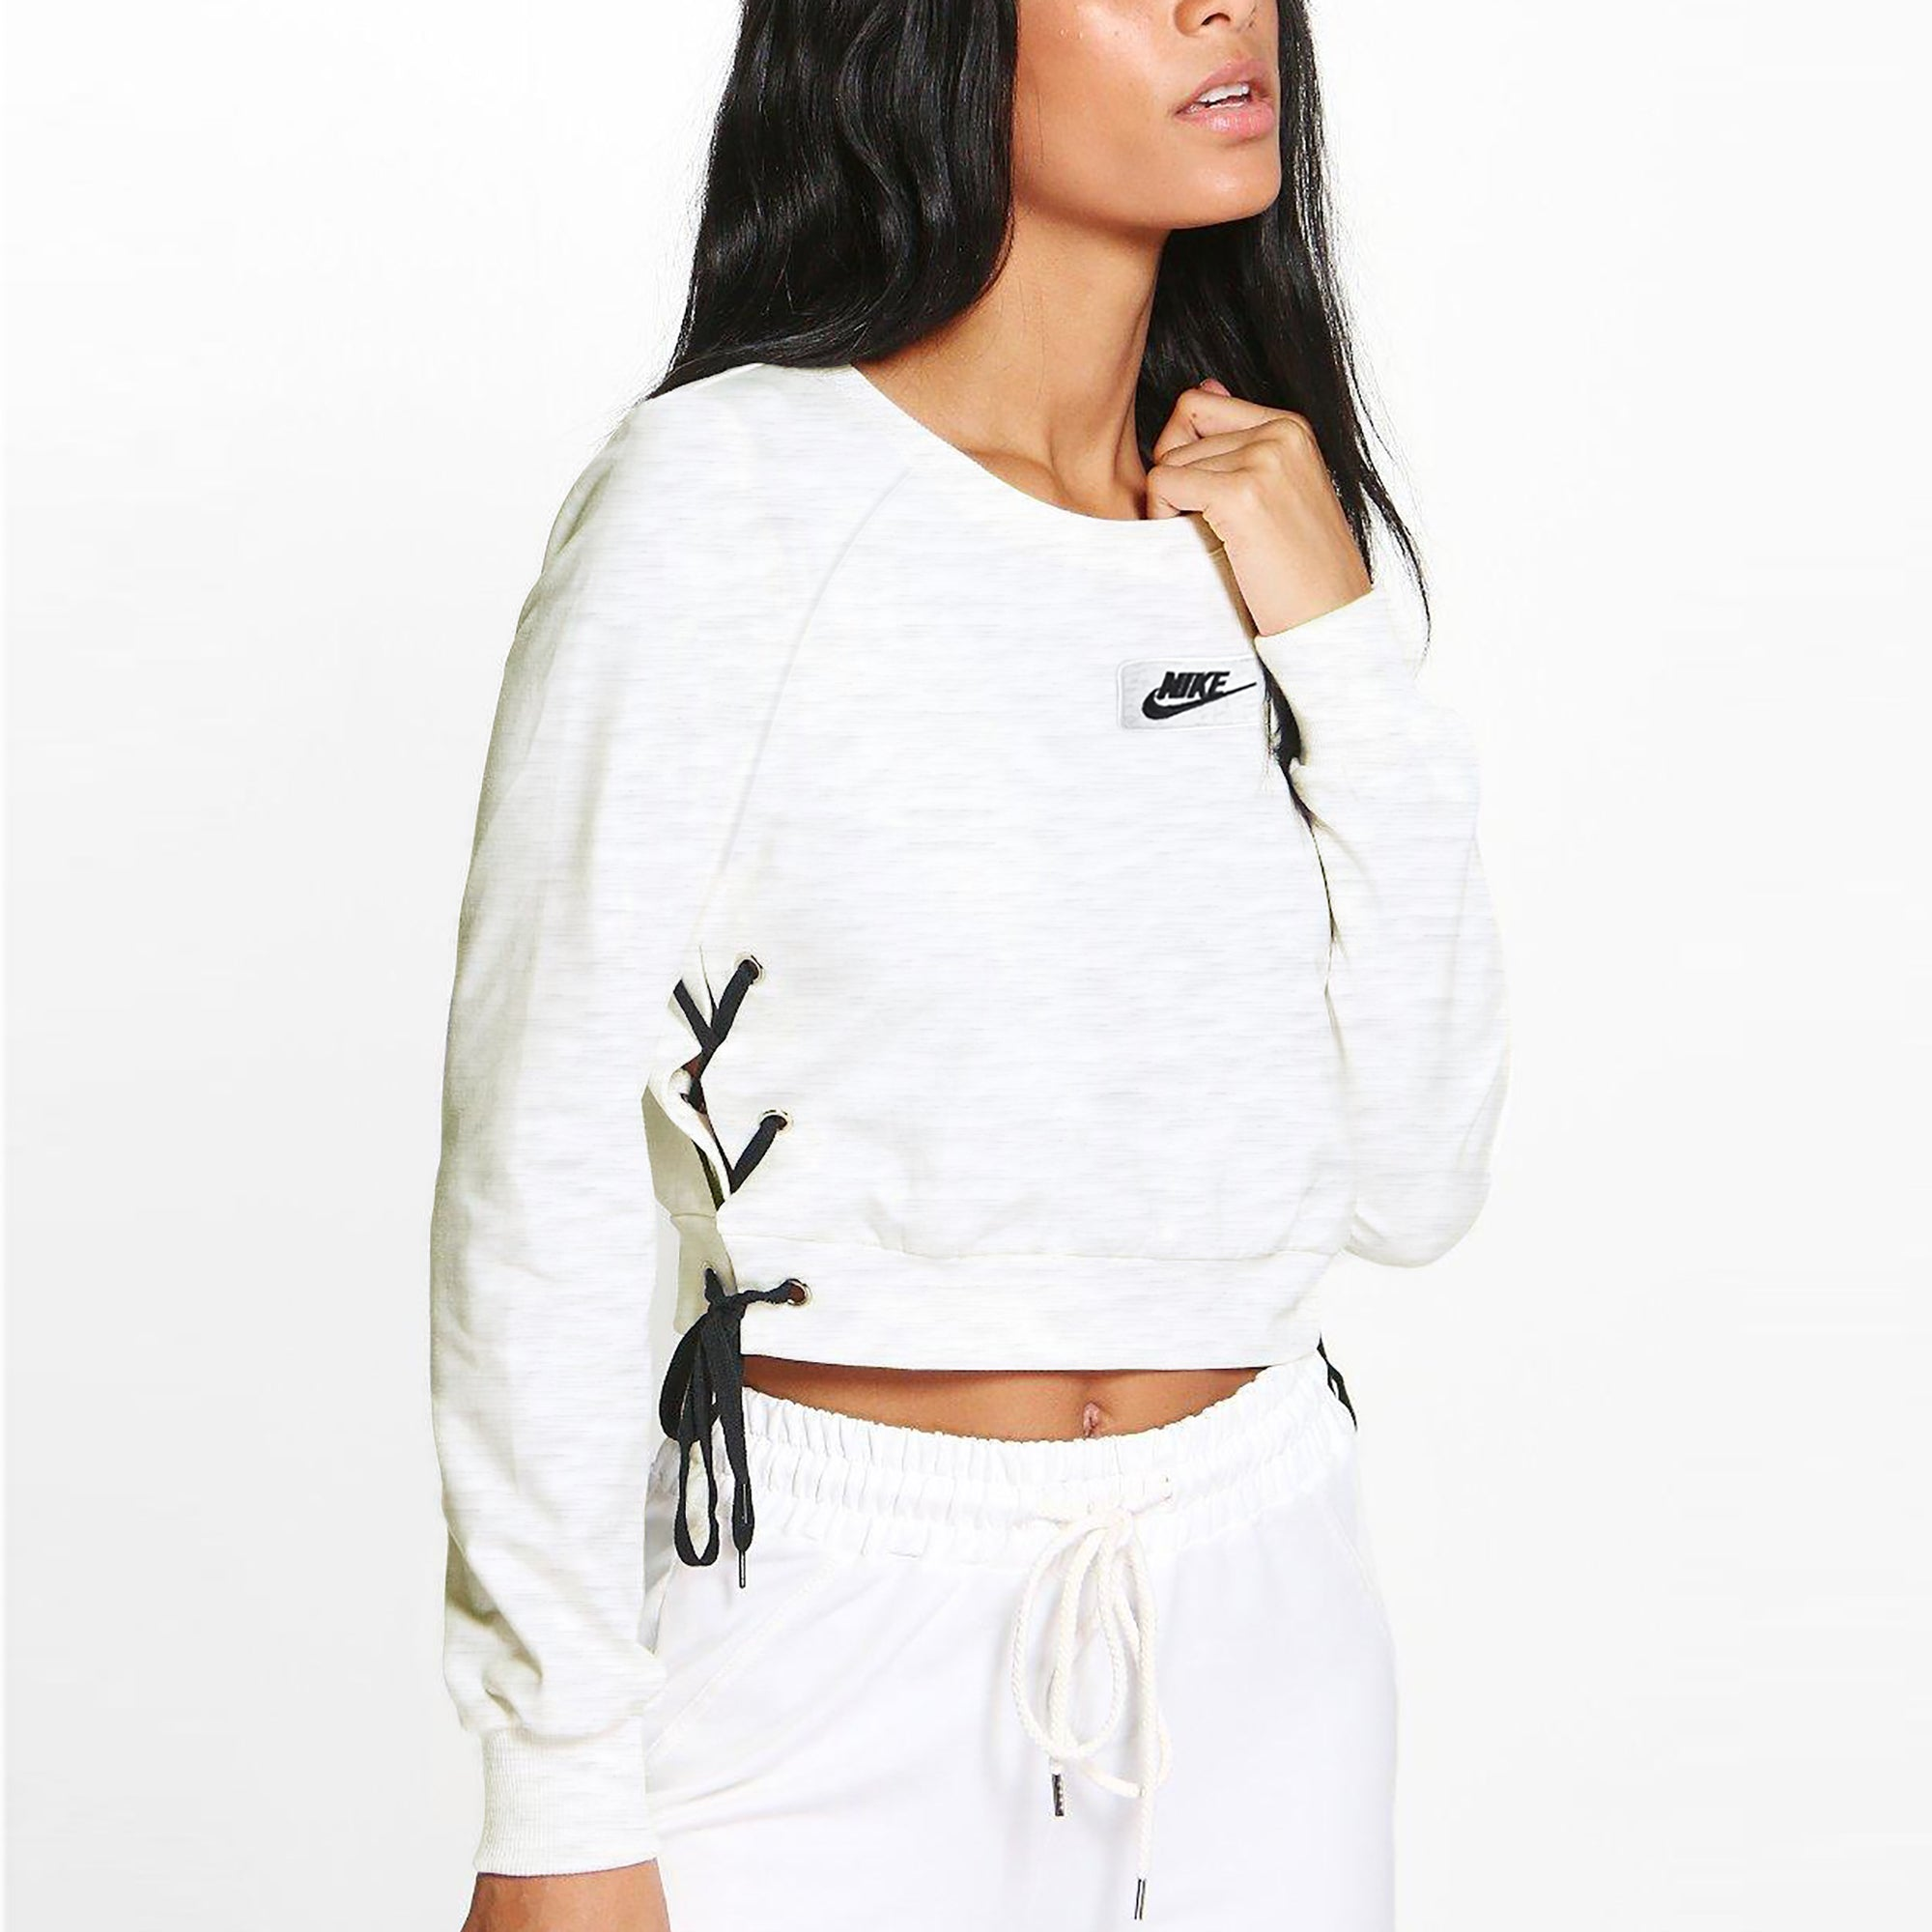 NK Terry Fleece Raglan Sleeve Crop Sweatshirt For Women-Off White Melange-SP1038